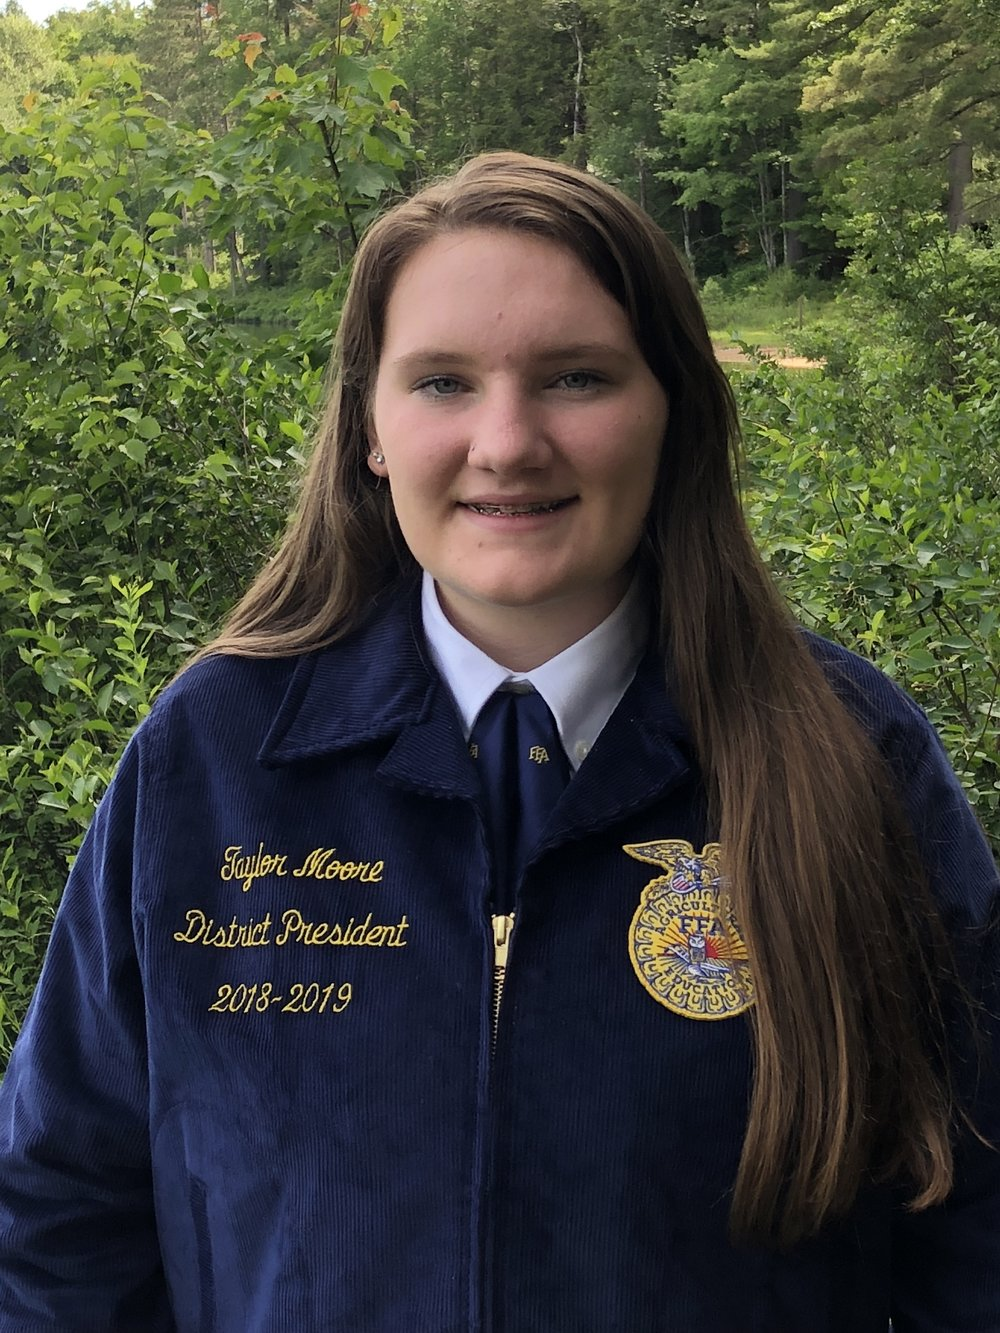 TAYLORE MOORE DISTRICT 4 PRESIDENT OXFORD FFA